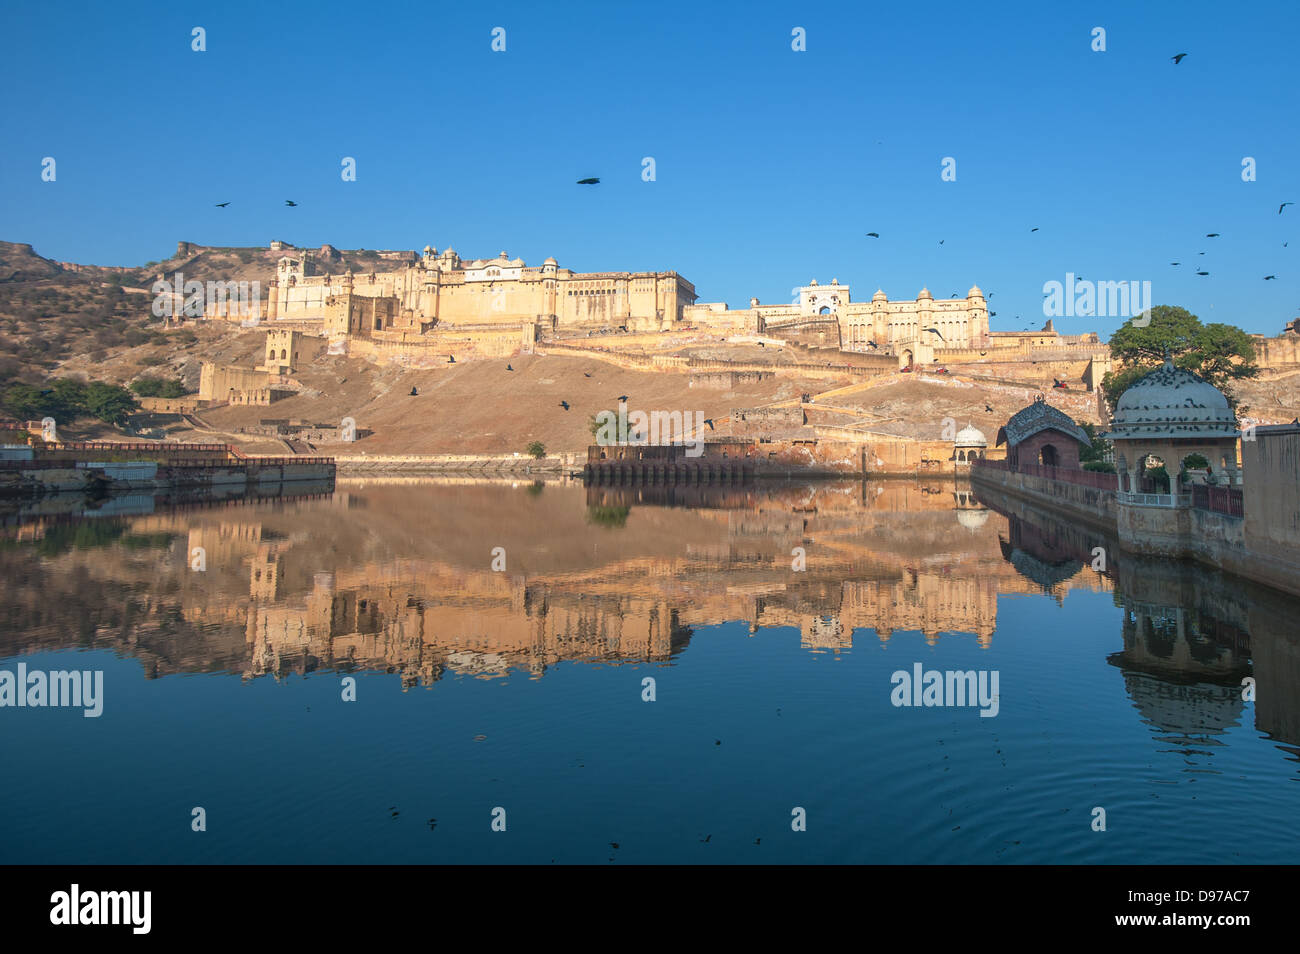 Fort Amber, Jaipur, Inde Photo Stock